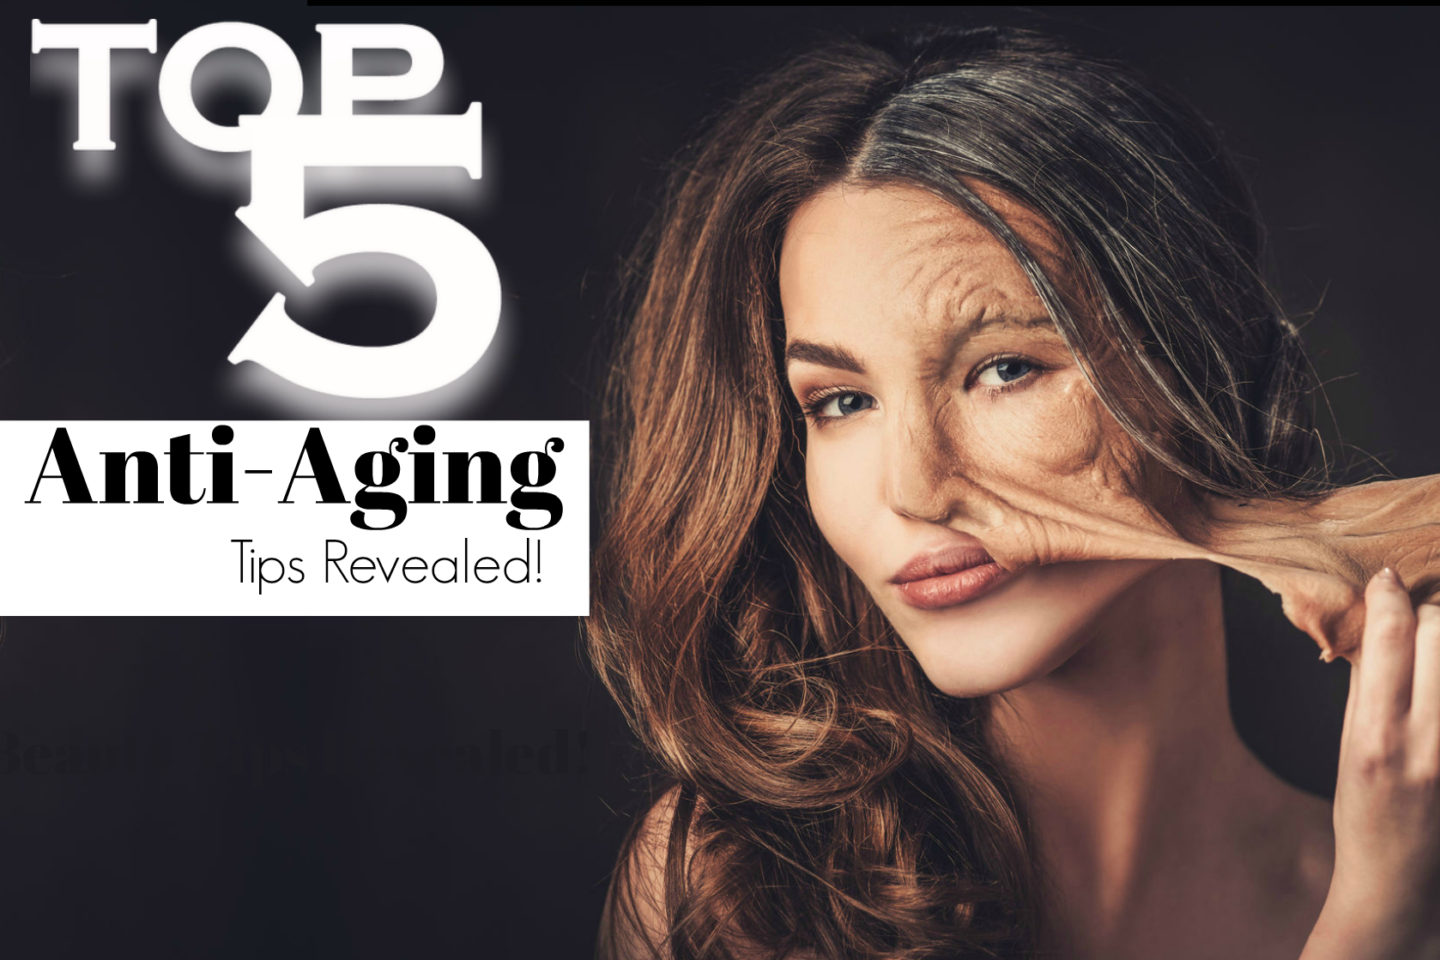 Top 5 Anti-Aging Secrets Revealed For Those Over Forty